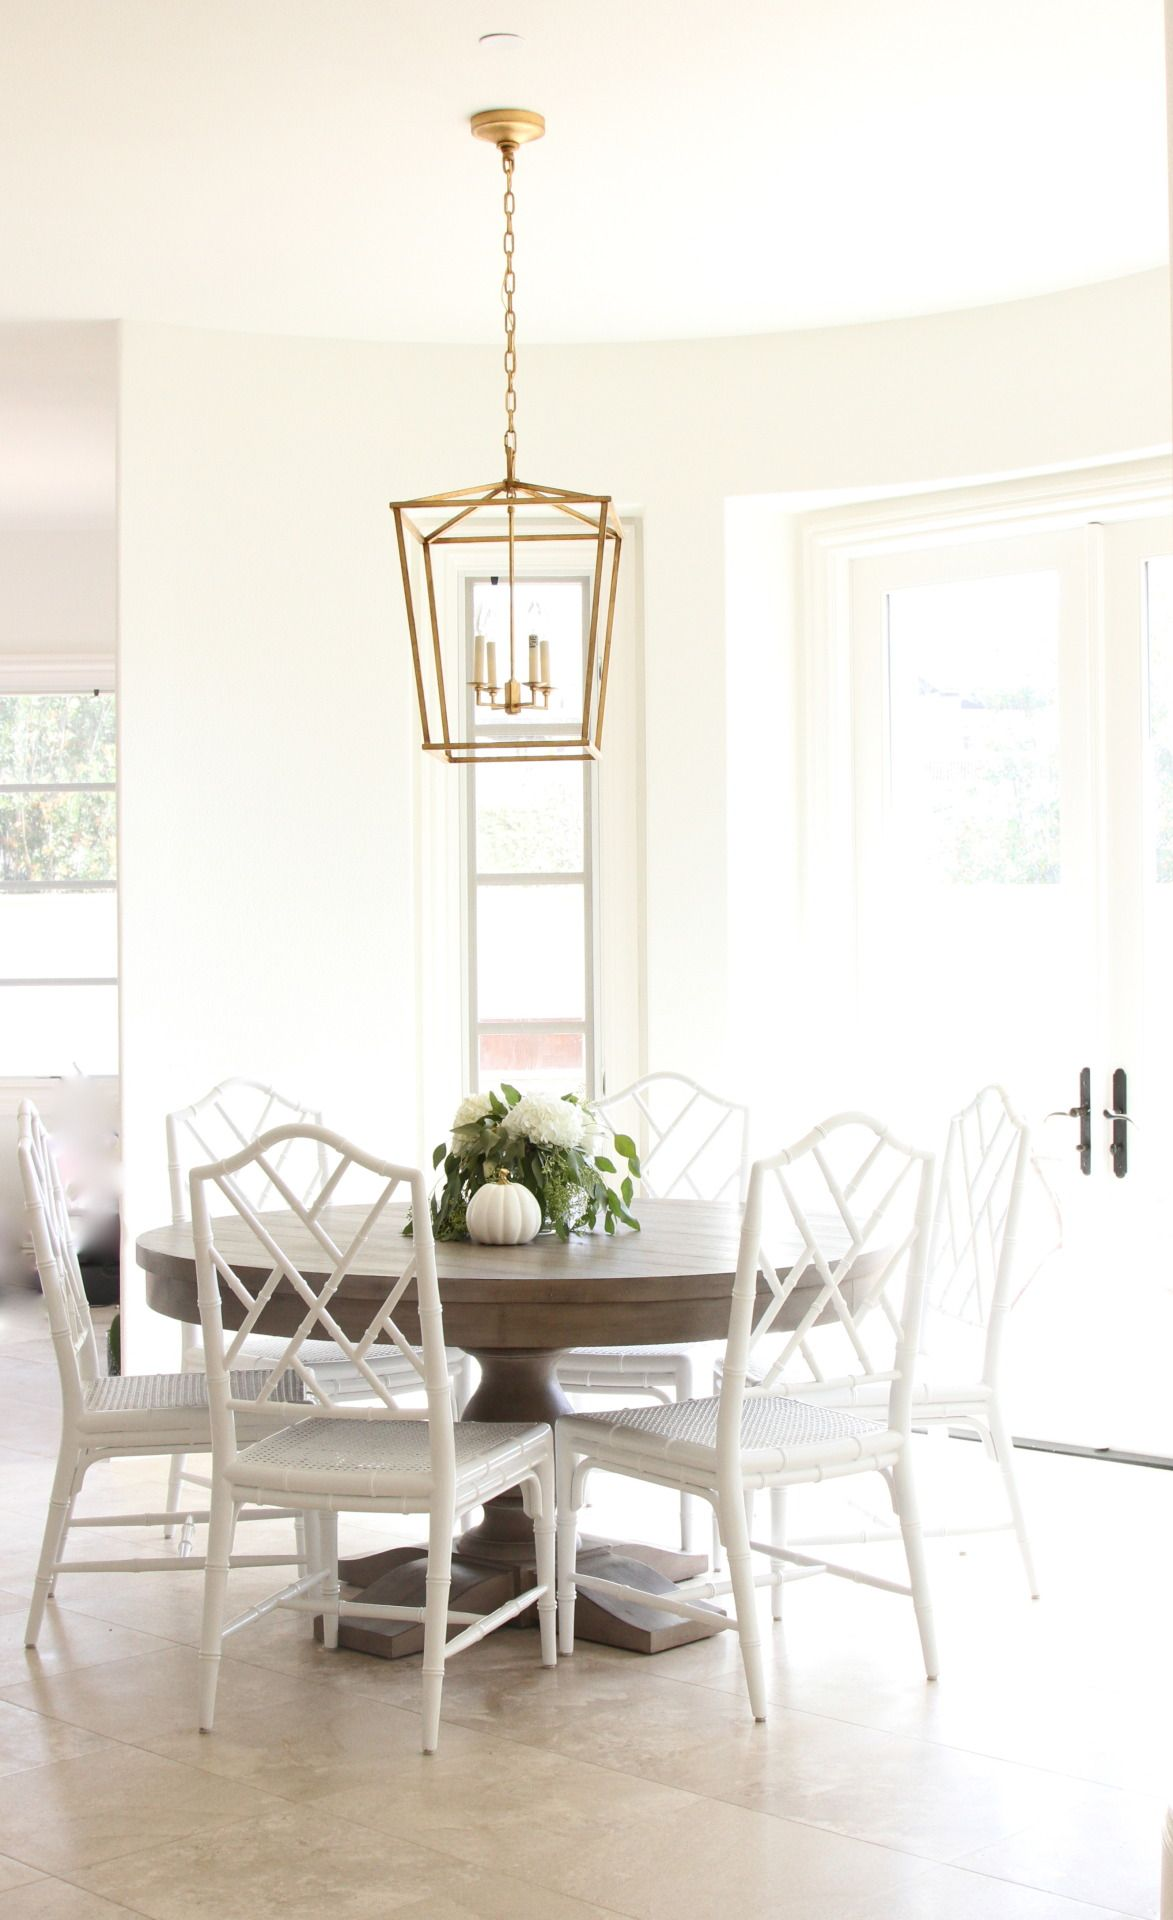 Dining E With Gold Lantern Light Fixture Ballard Designs Bamboo Chairs